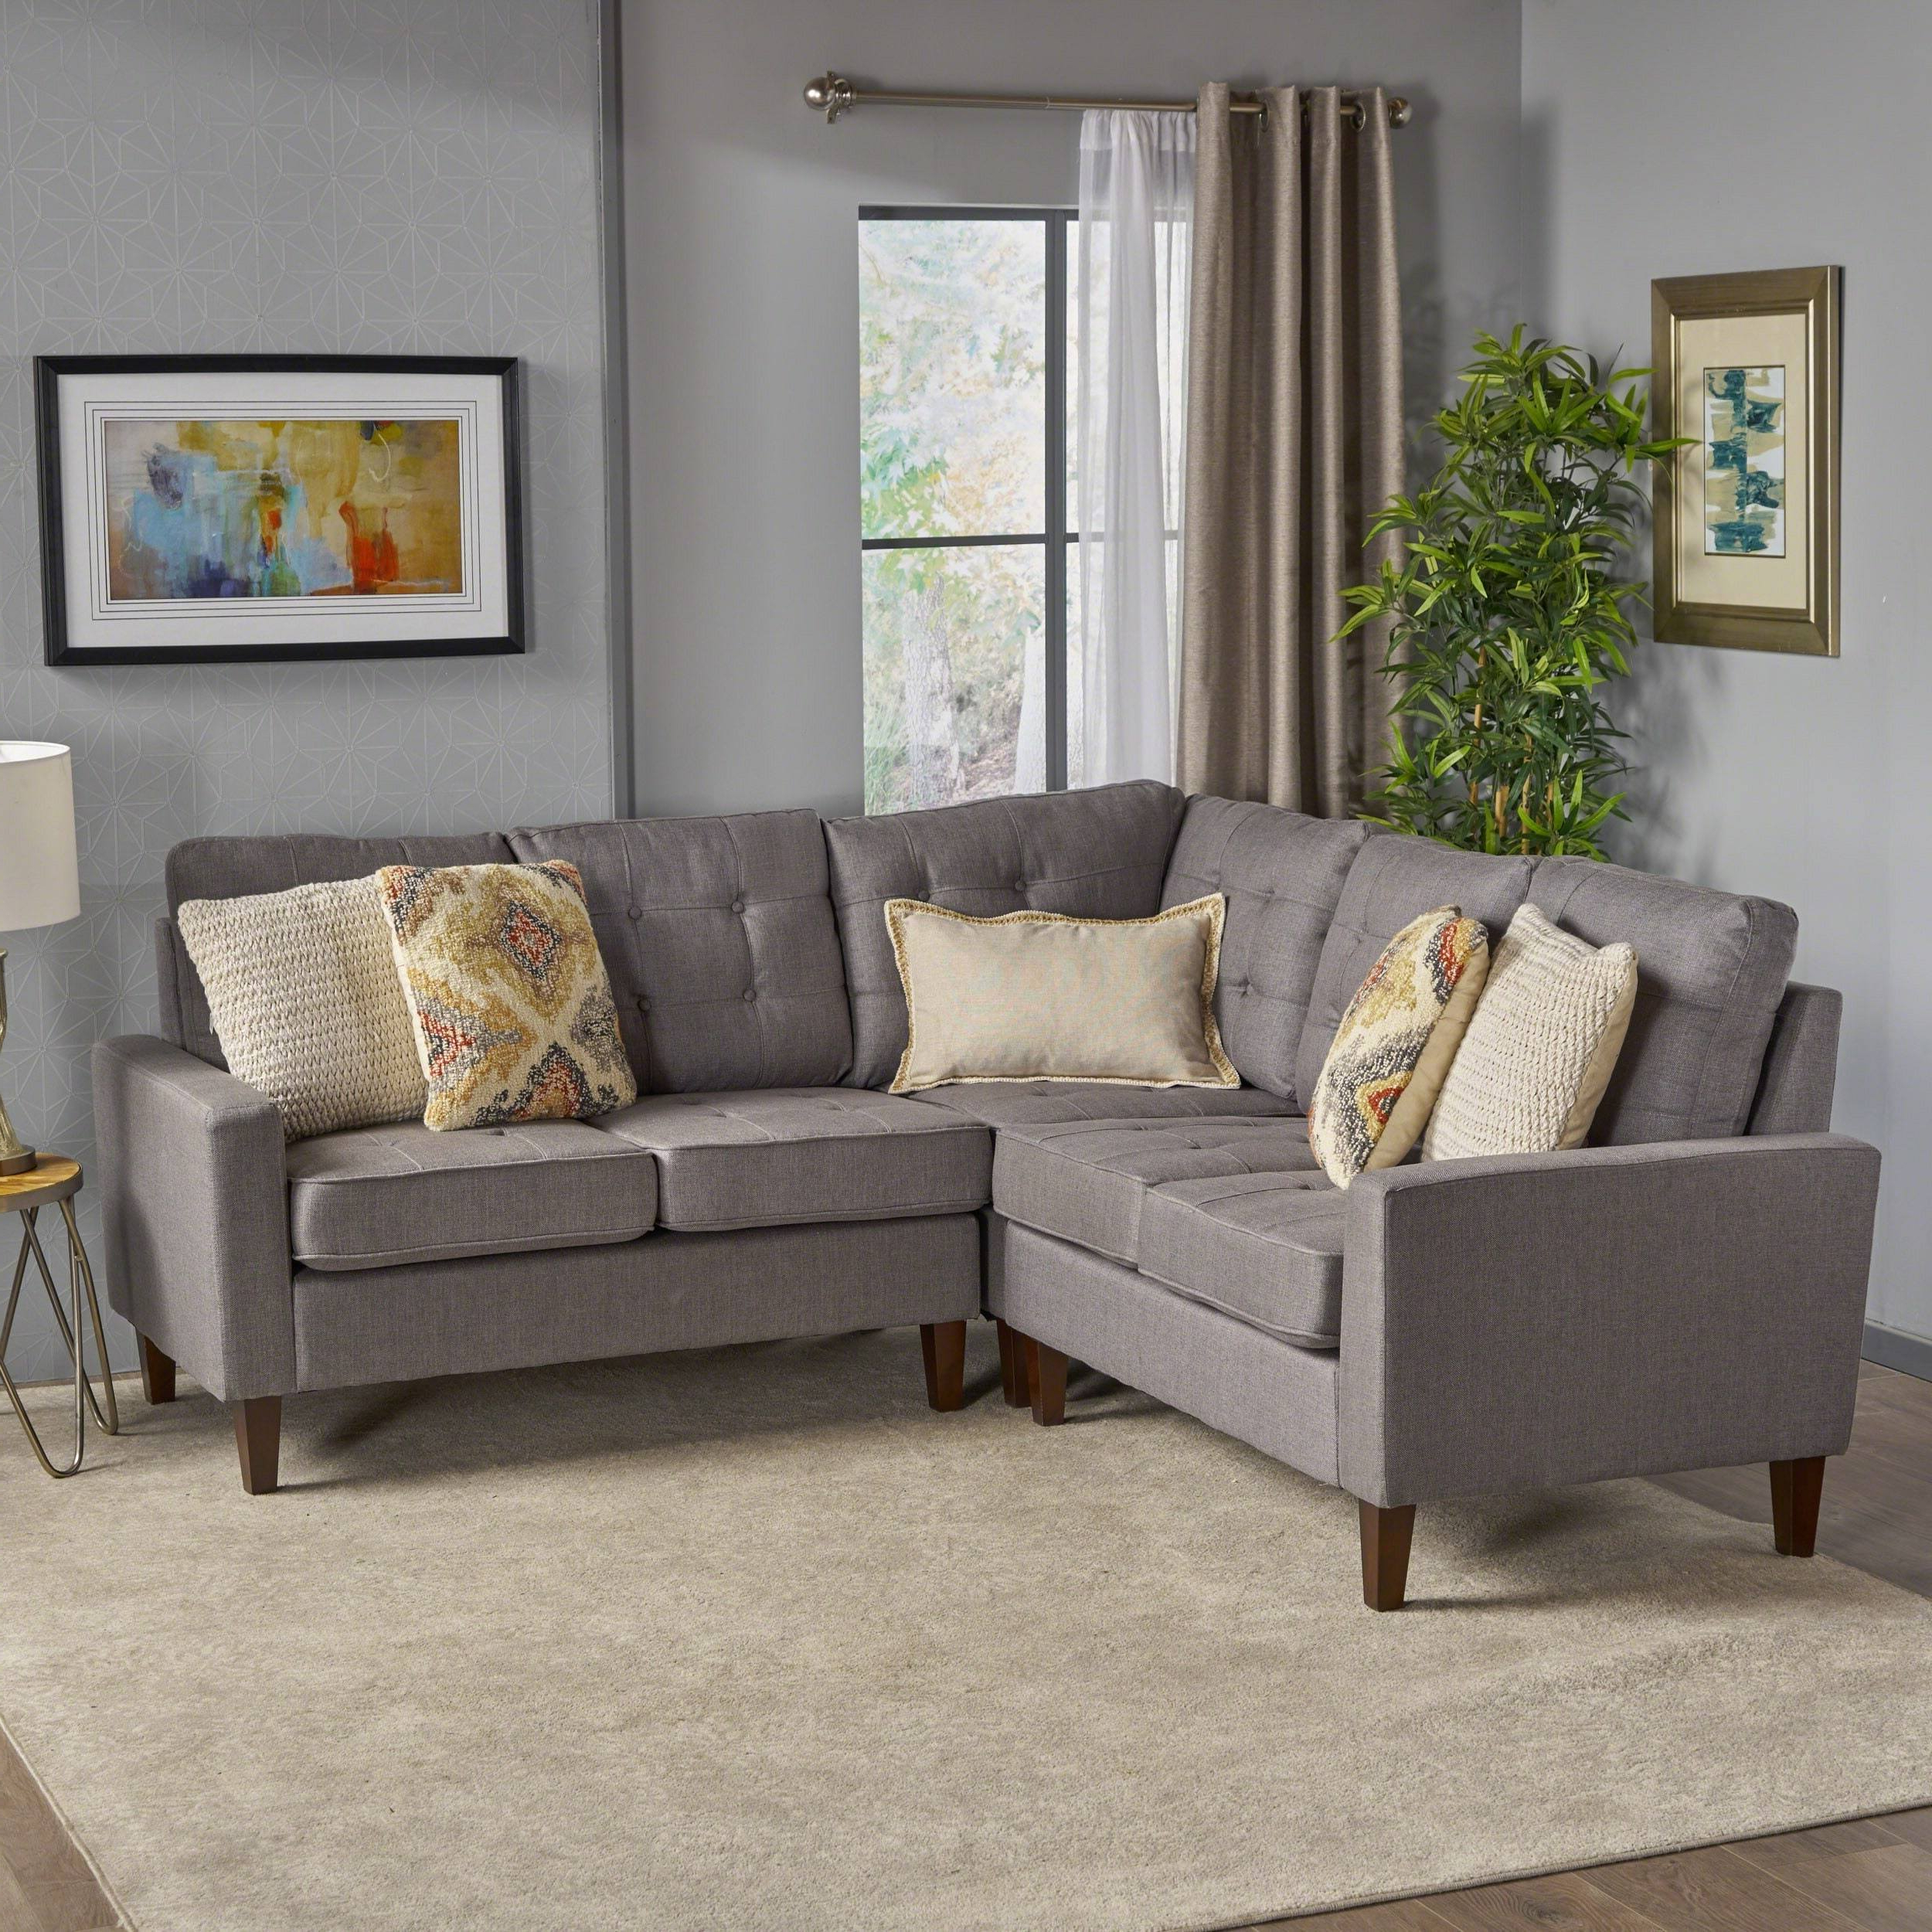 Popular 3 Piece Sectional Sofa (View 11 of 20)